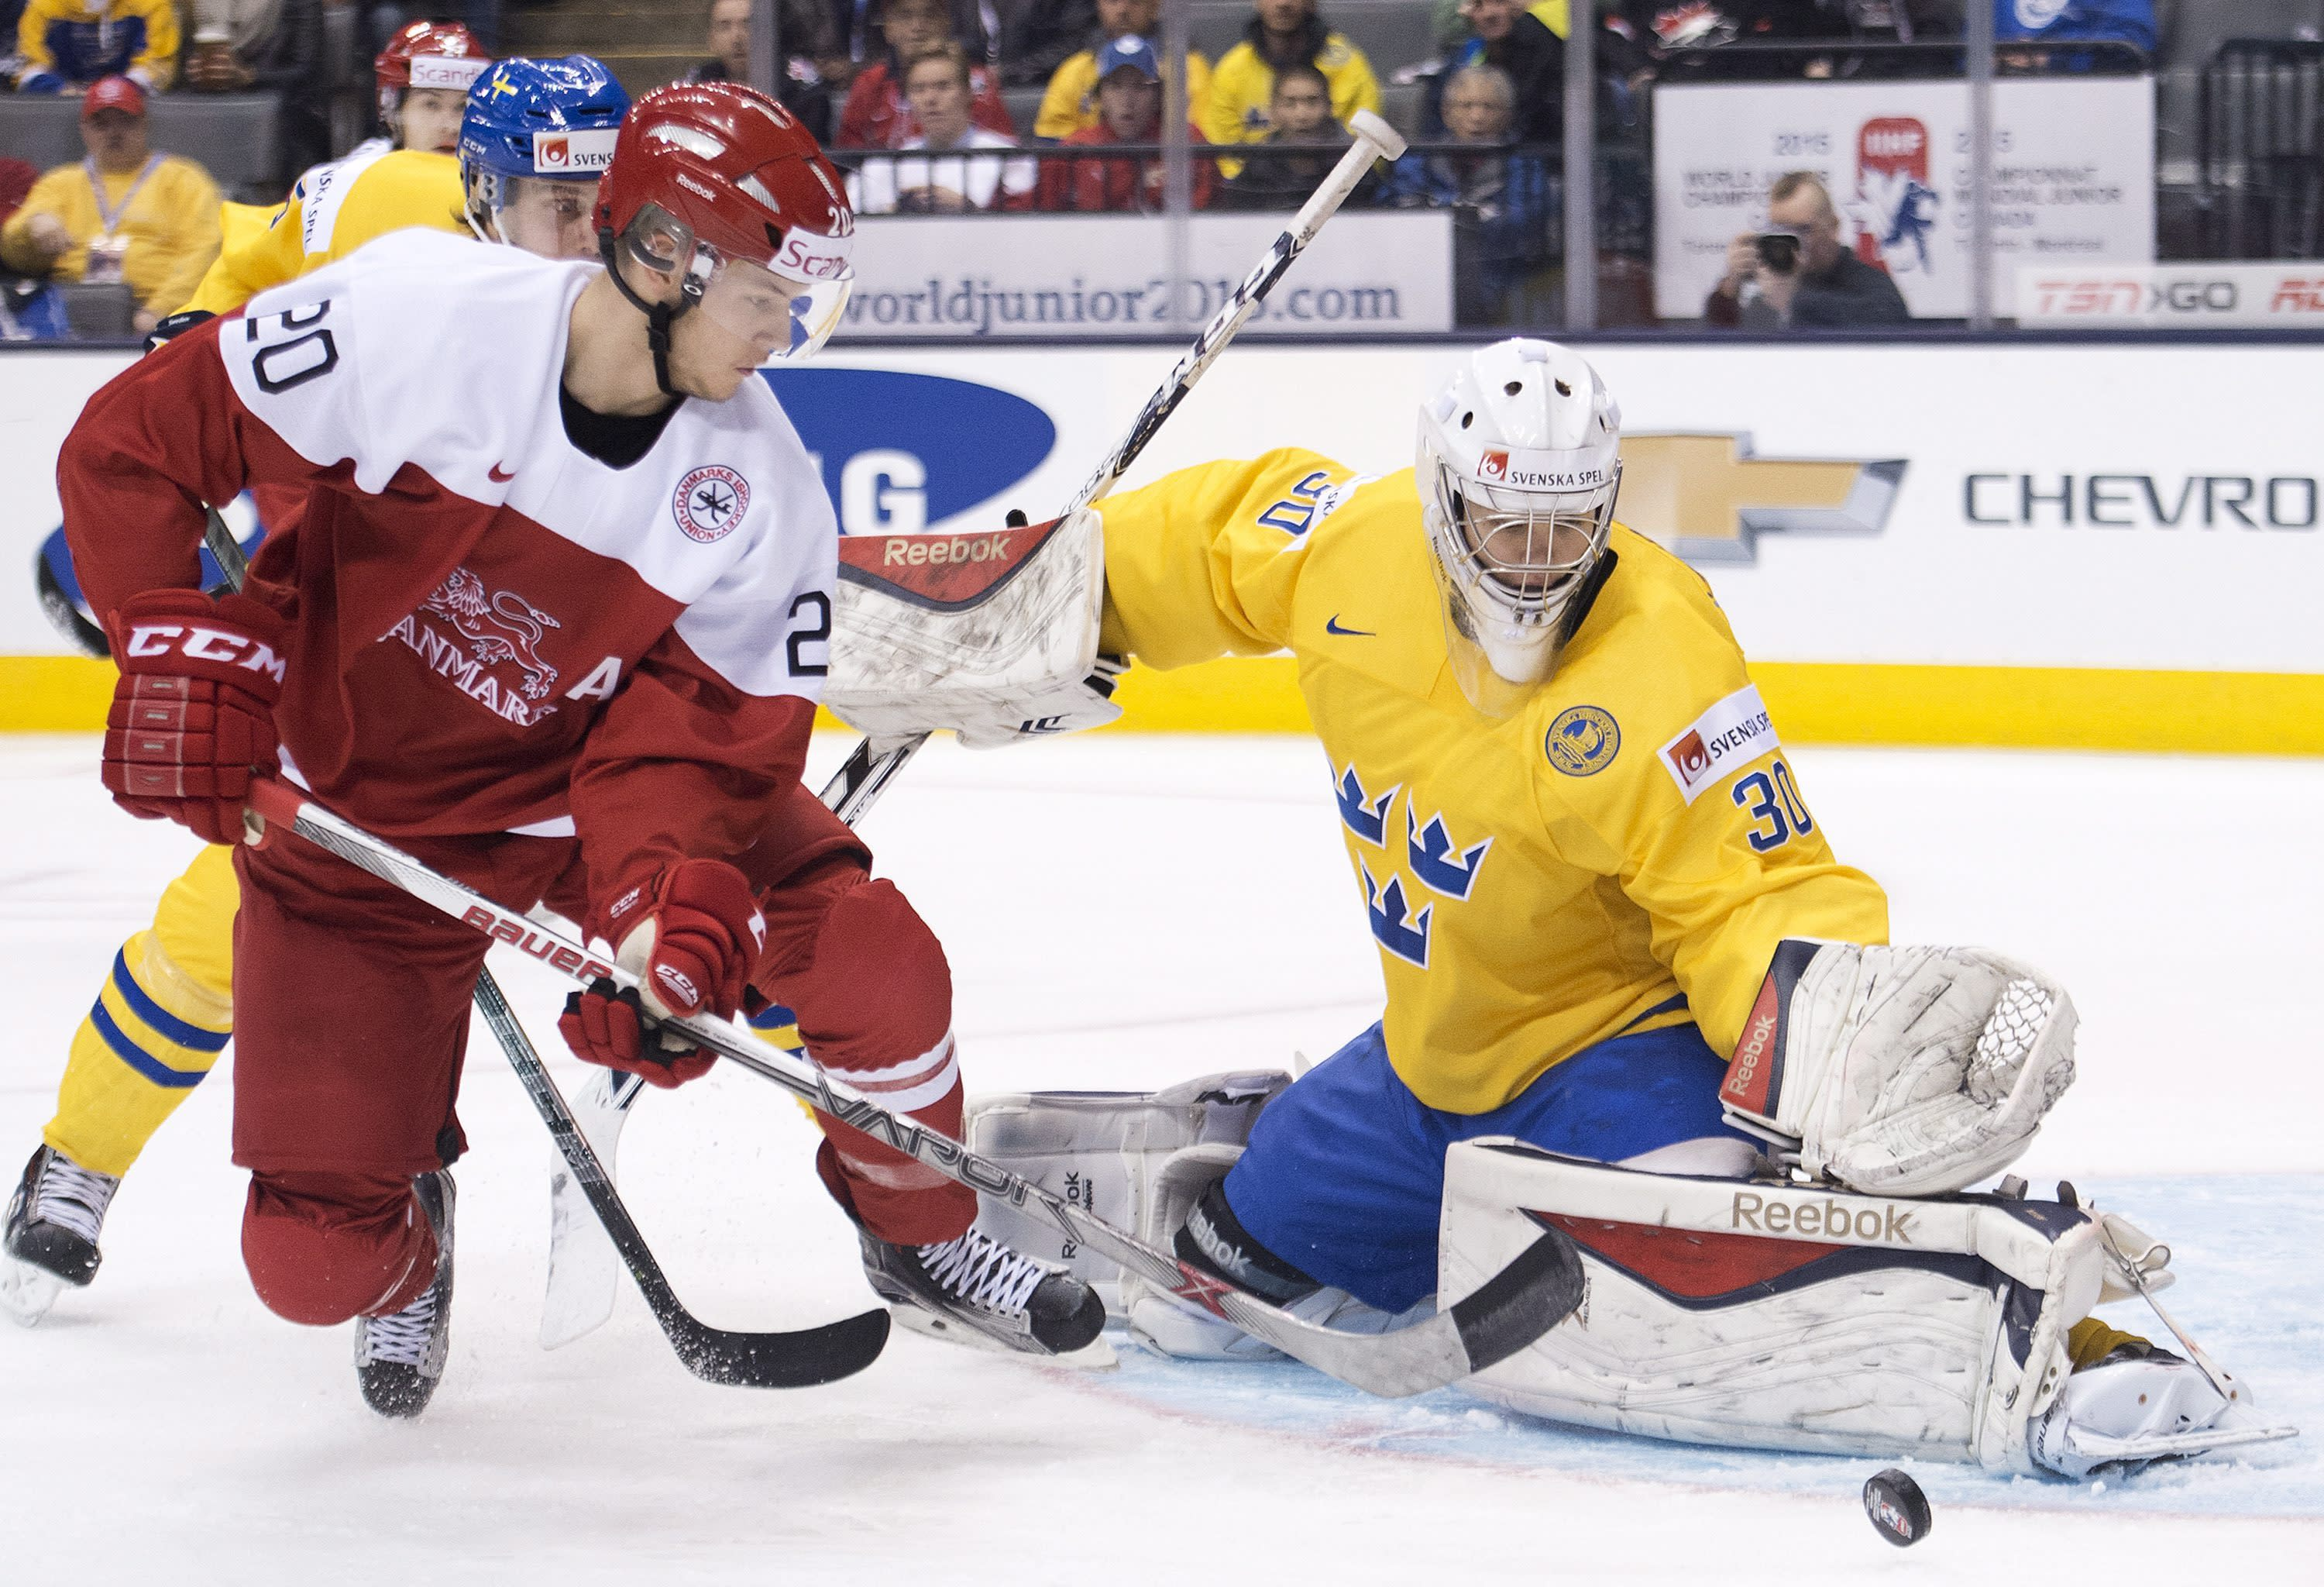 Sweden beats Denmark 5-1 in world junior hockey